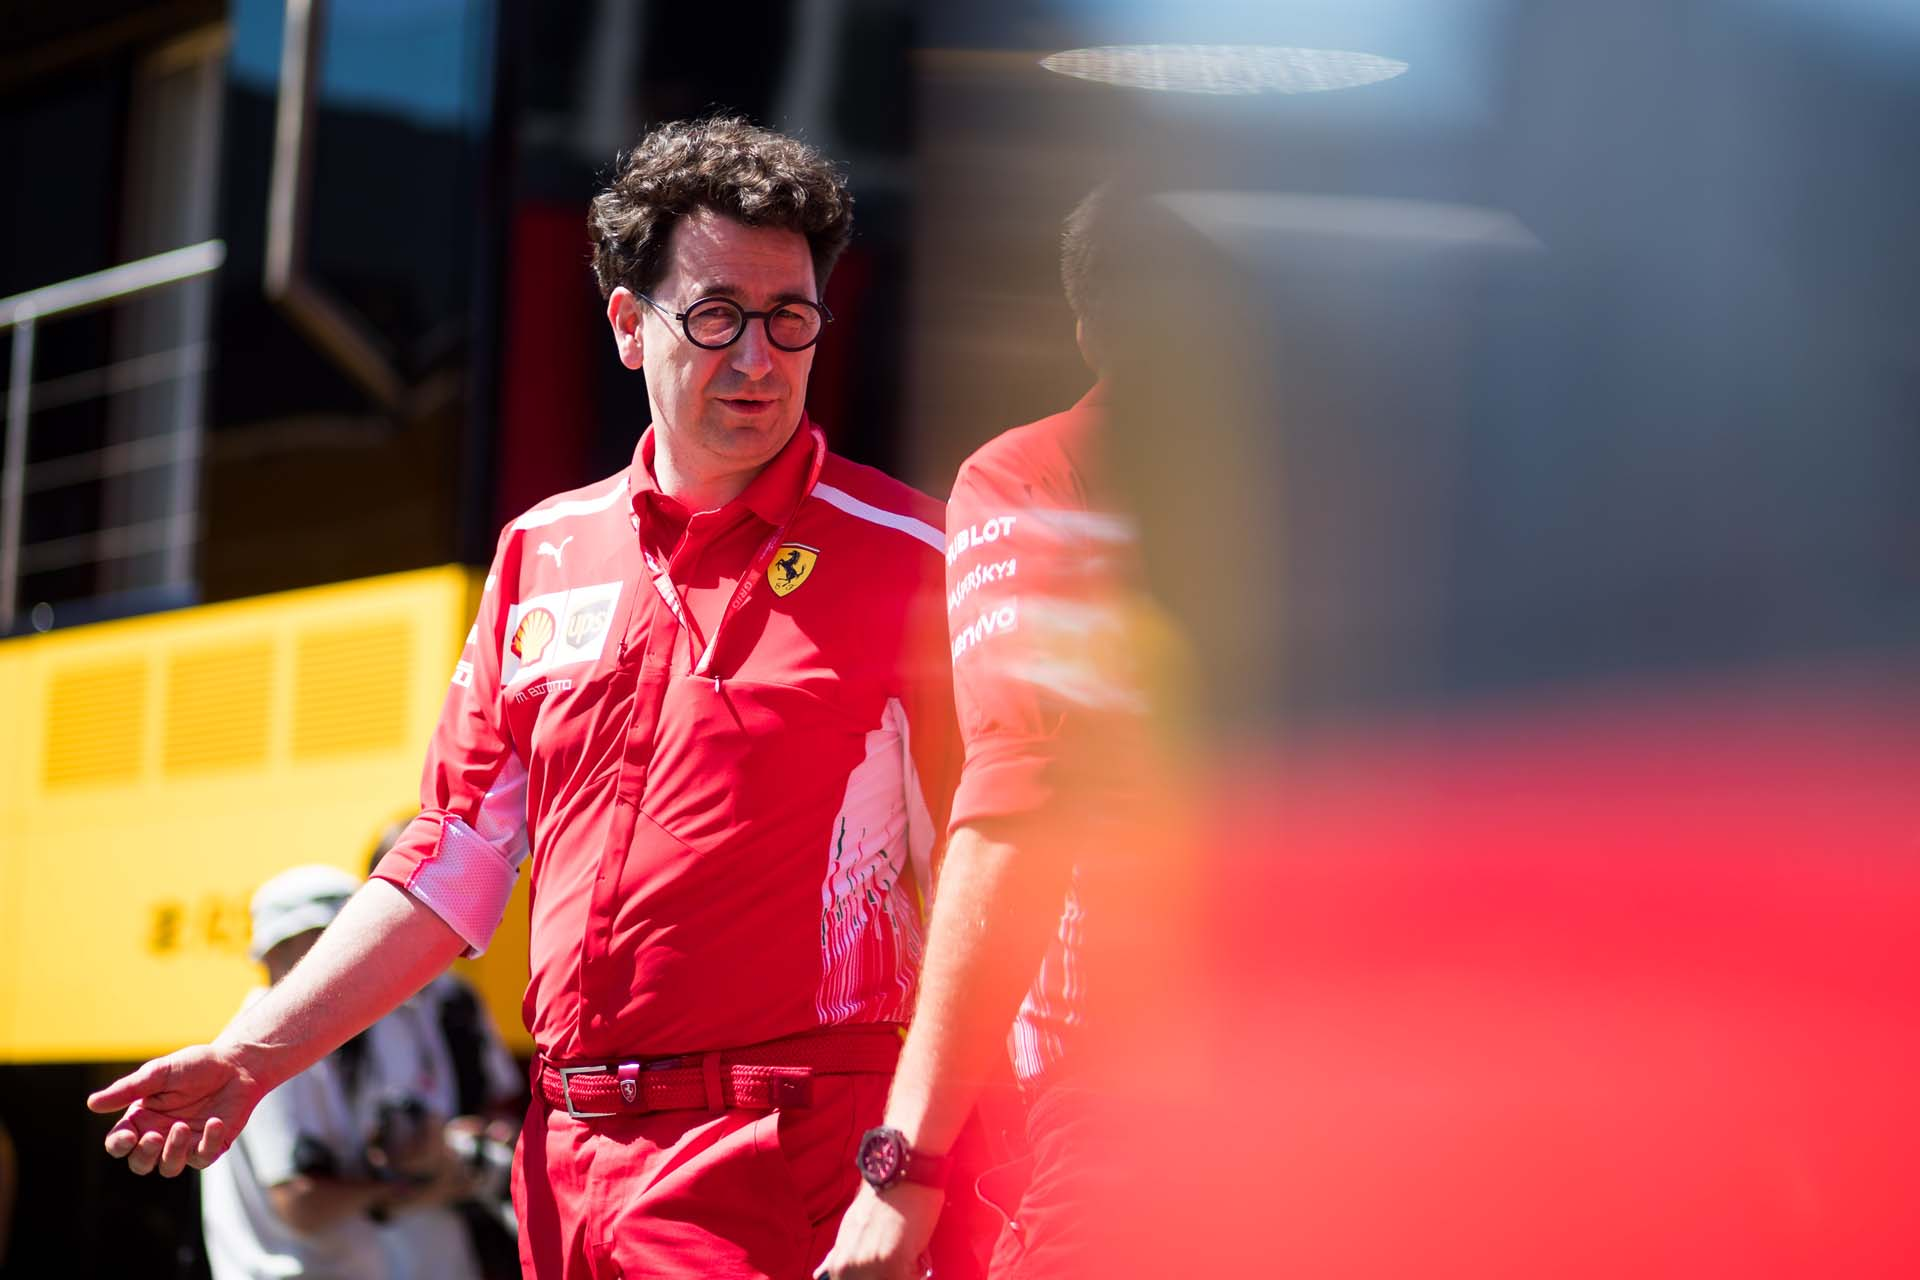 SPIELBERG,AUSTRIA,30.JUN.19 - MOTORSPORTS, FORMULA 1 - Grand Prix of Austria, Red Bull Ring. Image shows executive director Mattia Binotto (Ferrari). Photo: GEPA pictures/ Daniel Goetzhaber - For editorial use only. Image is free of charge.